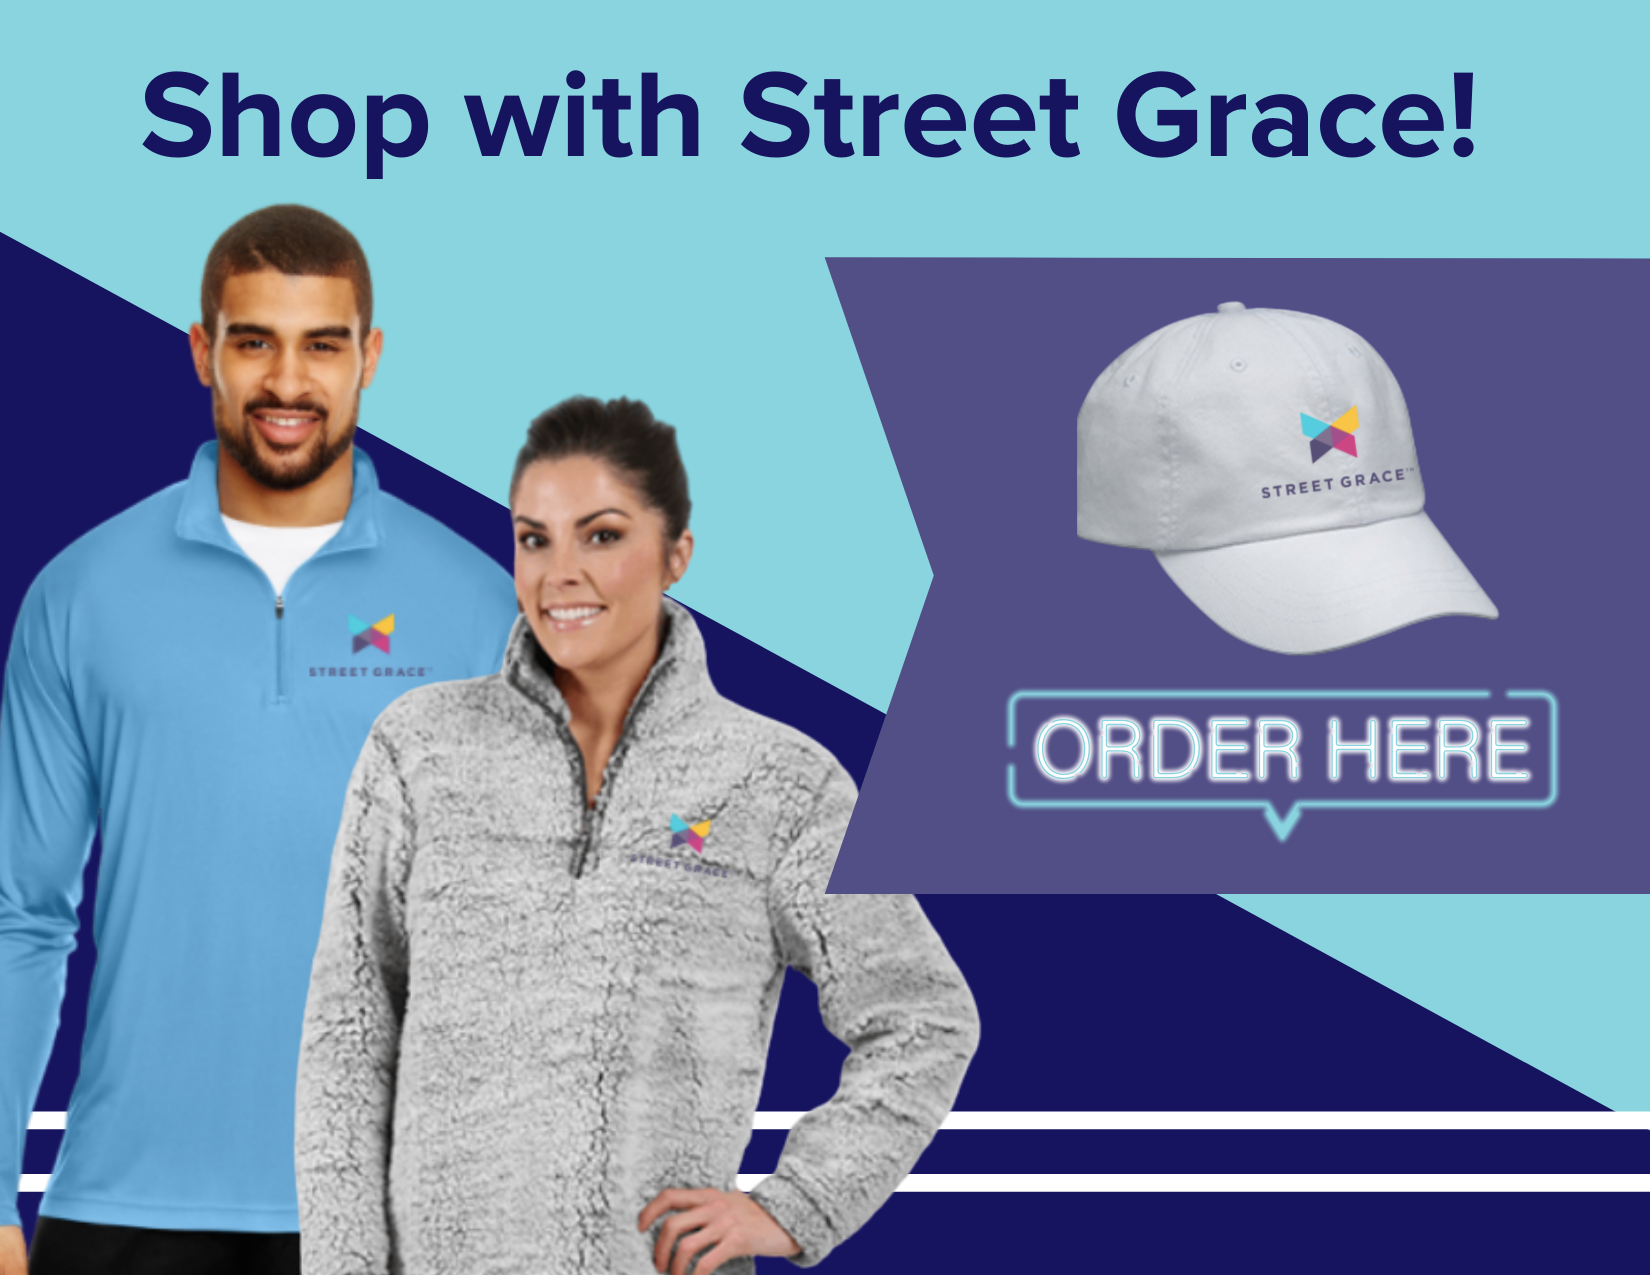 Shop with Street Grace!